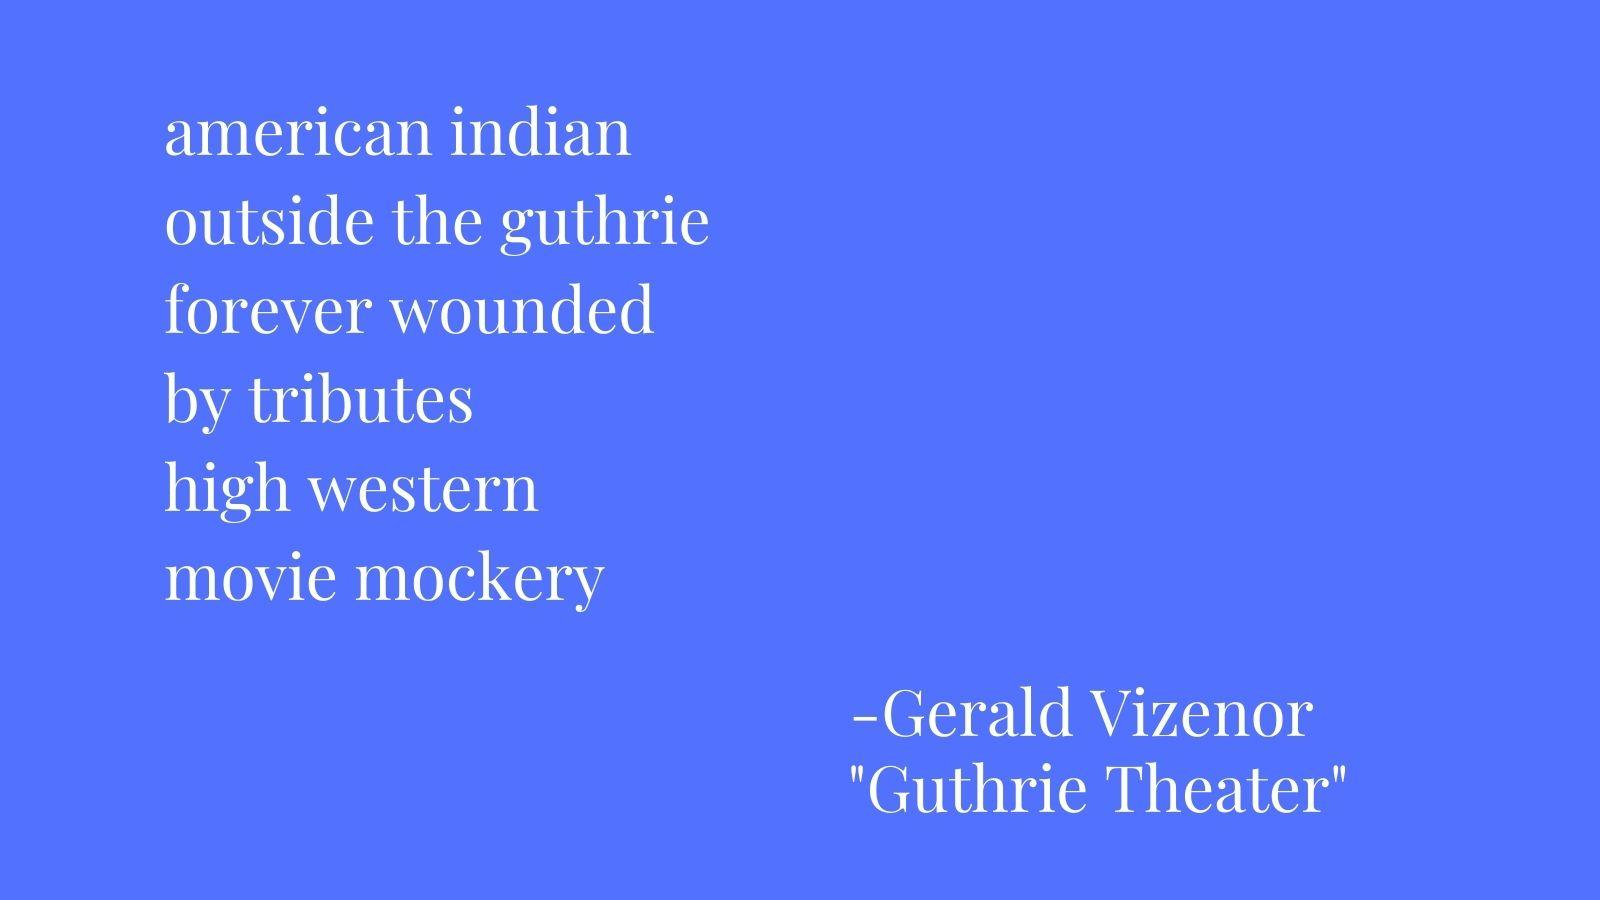 american indian outside the guthrie forever wounded by tributes high western movie mockery